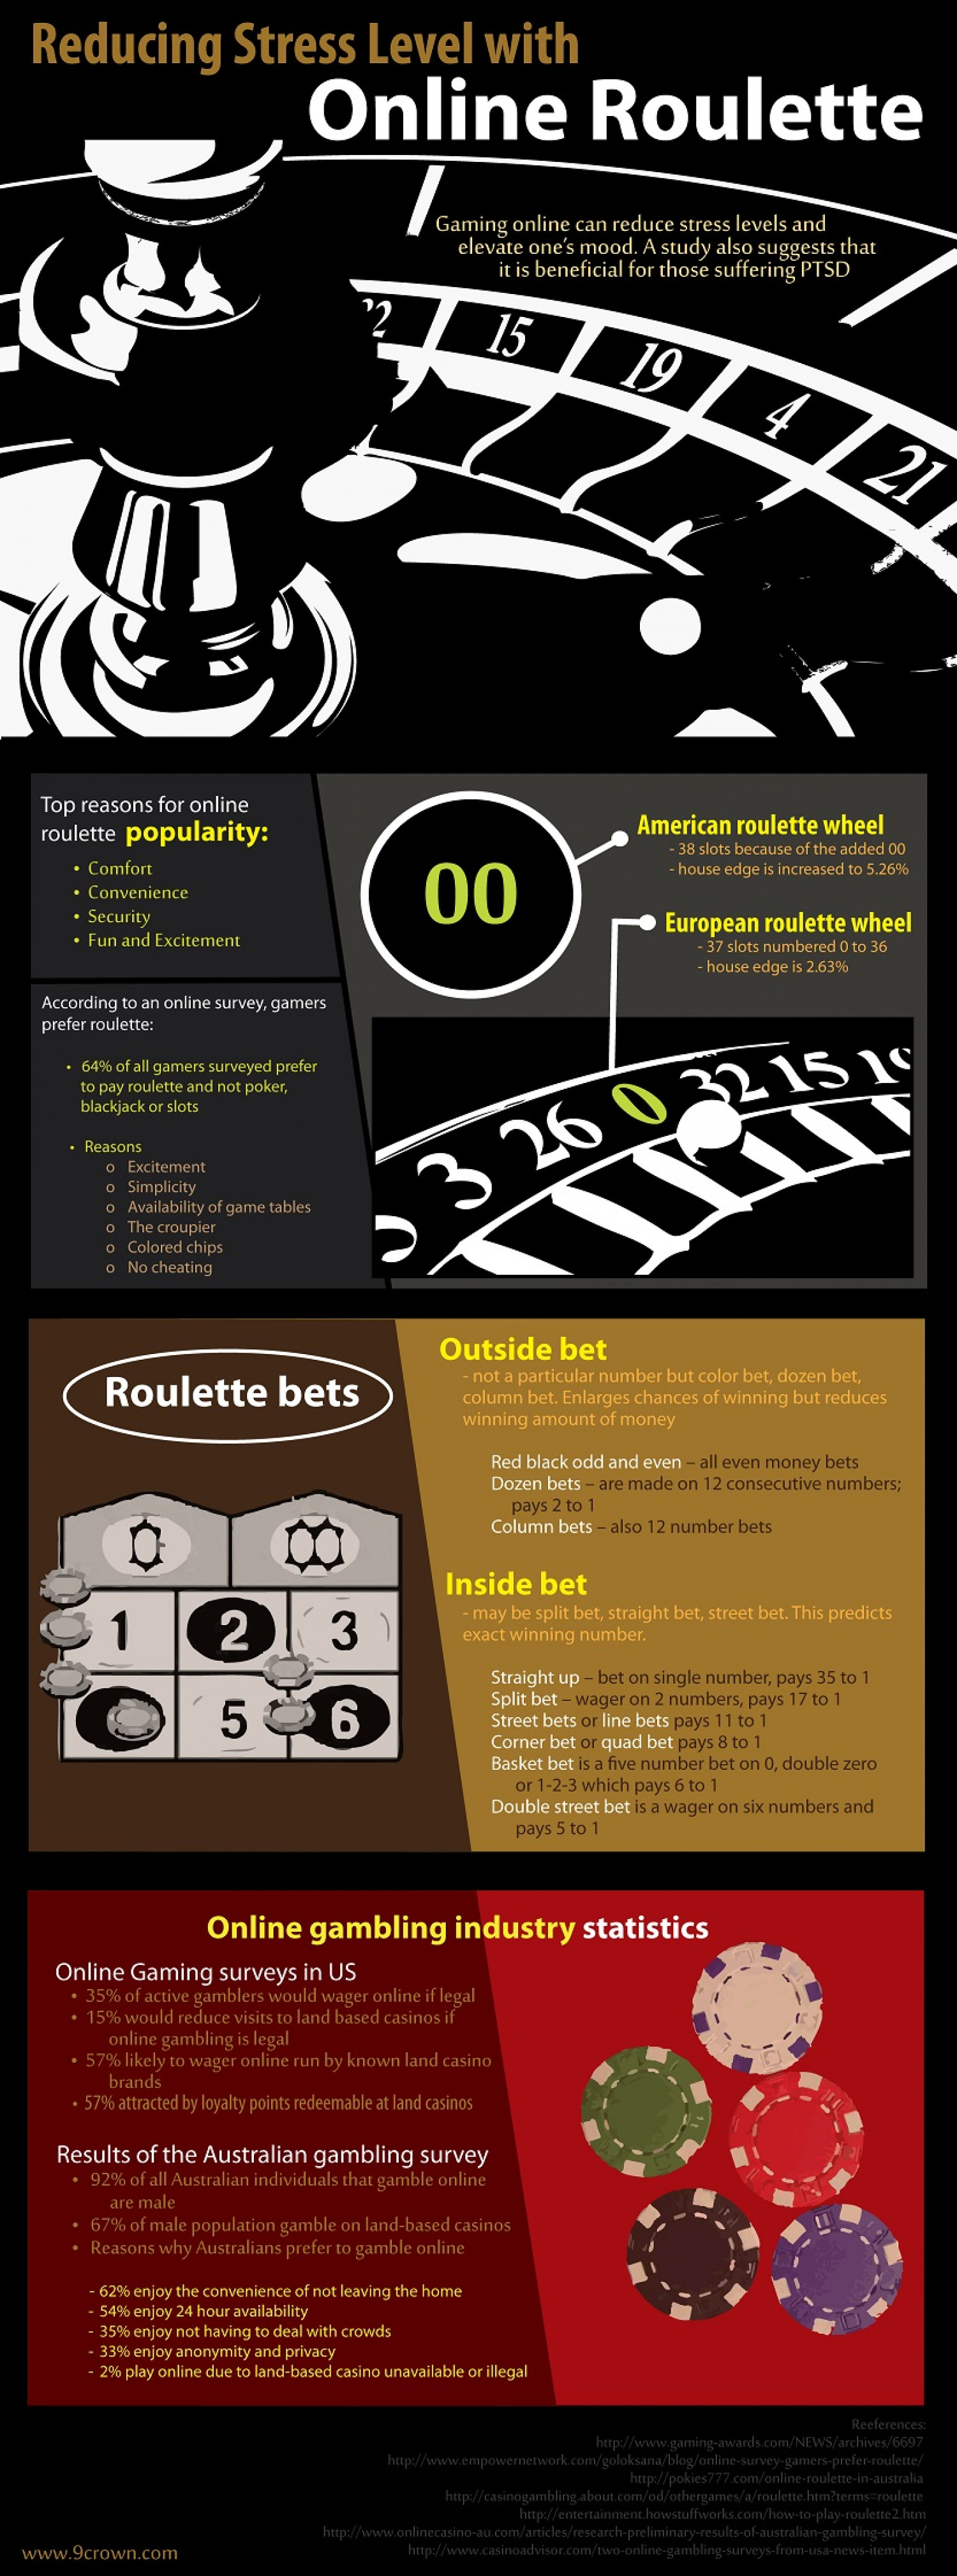 Reducing Stress Level with Online Roulette Infographic